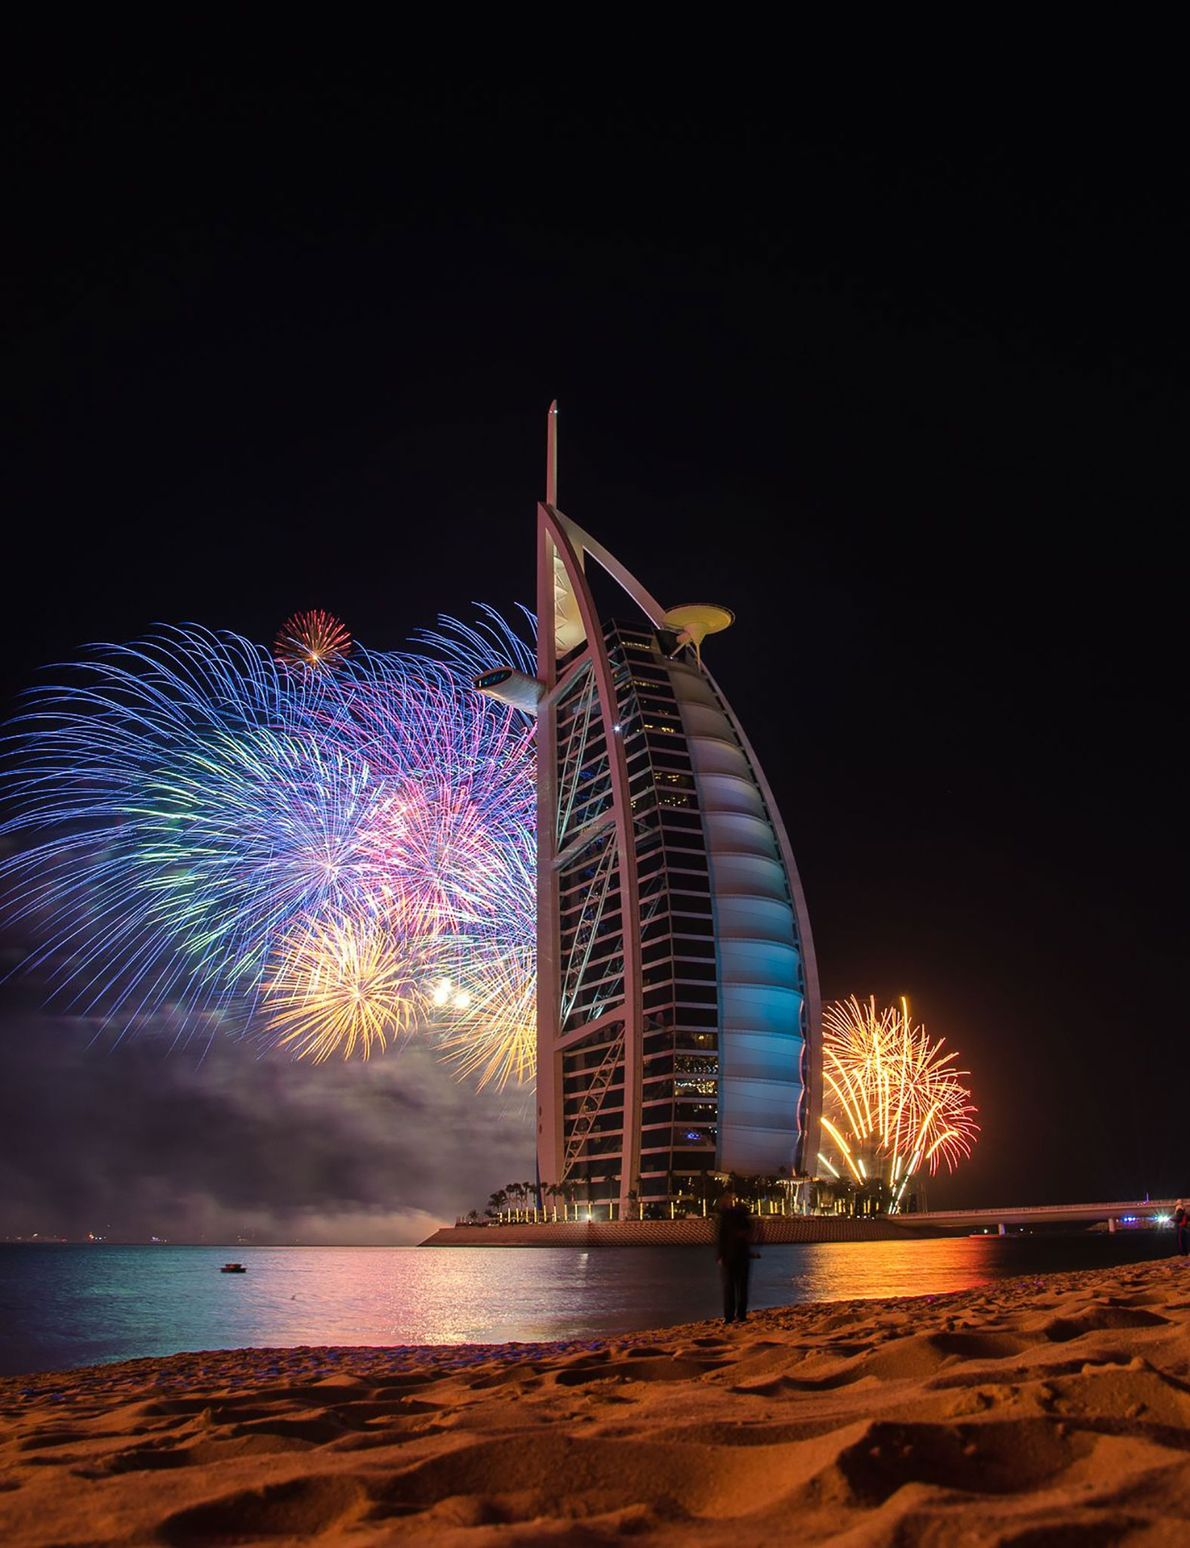 Dubai Dubai loves to do things bigger. In 2014, this show of 500,000 fireworks earned the city-emirate ...